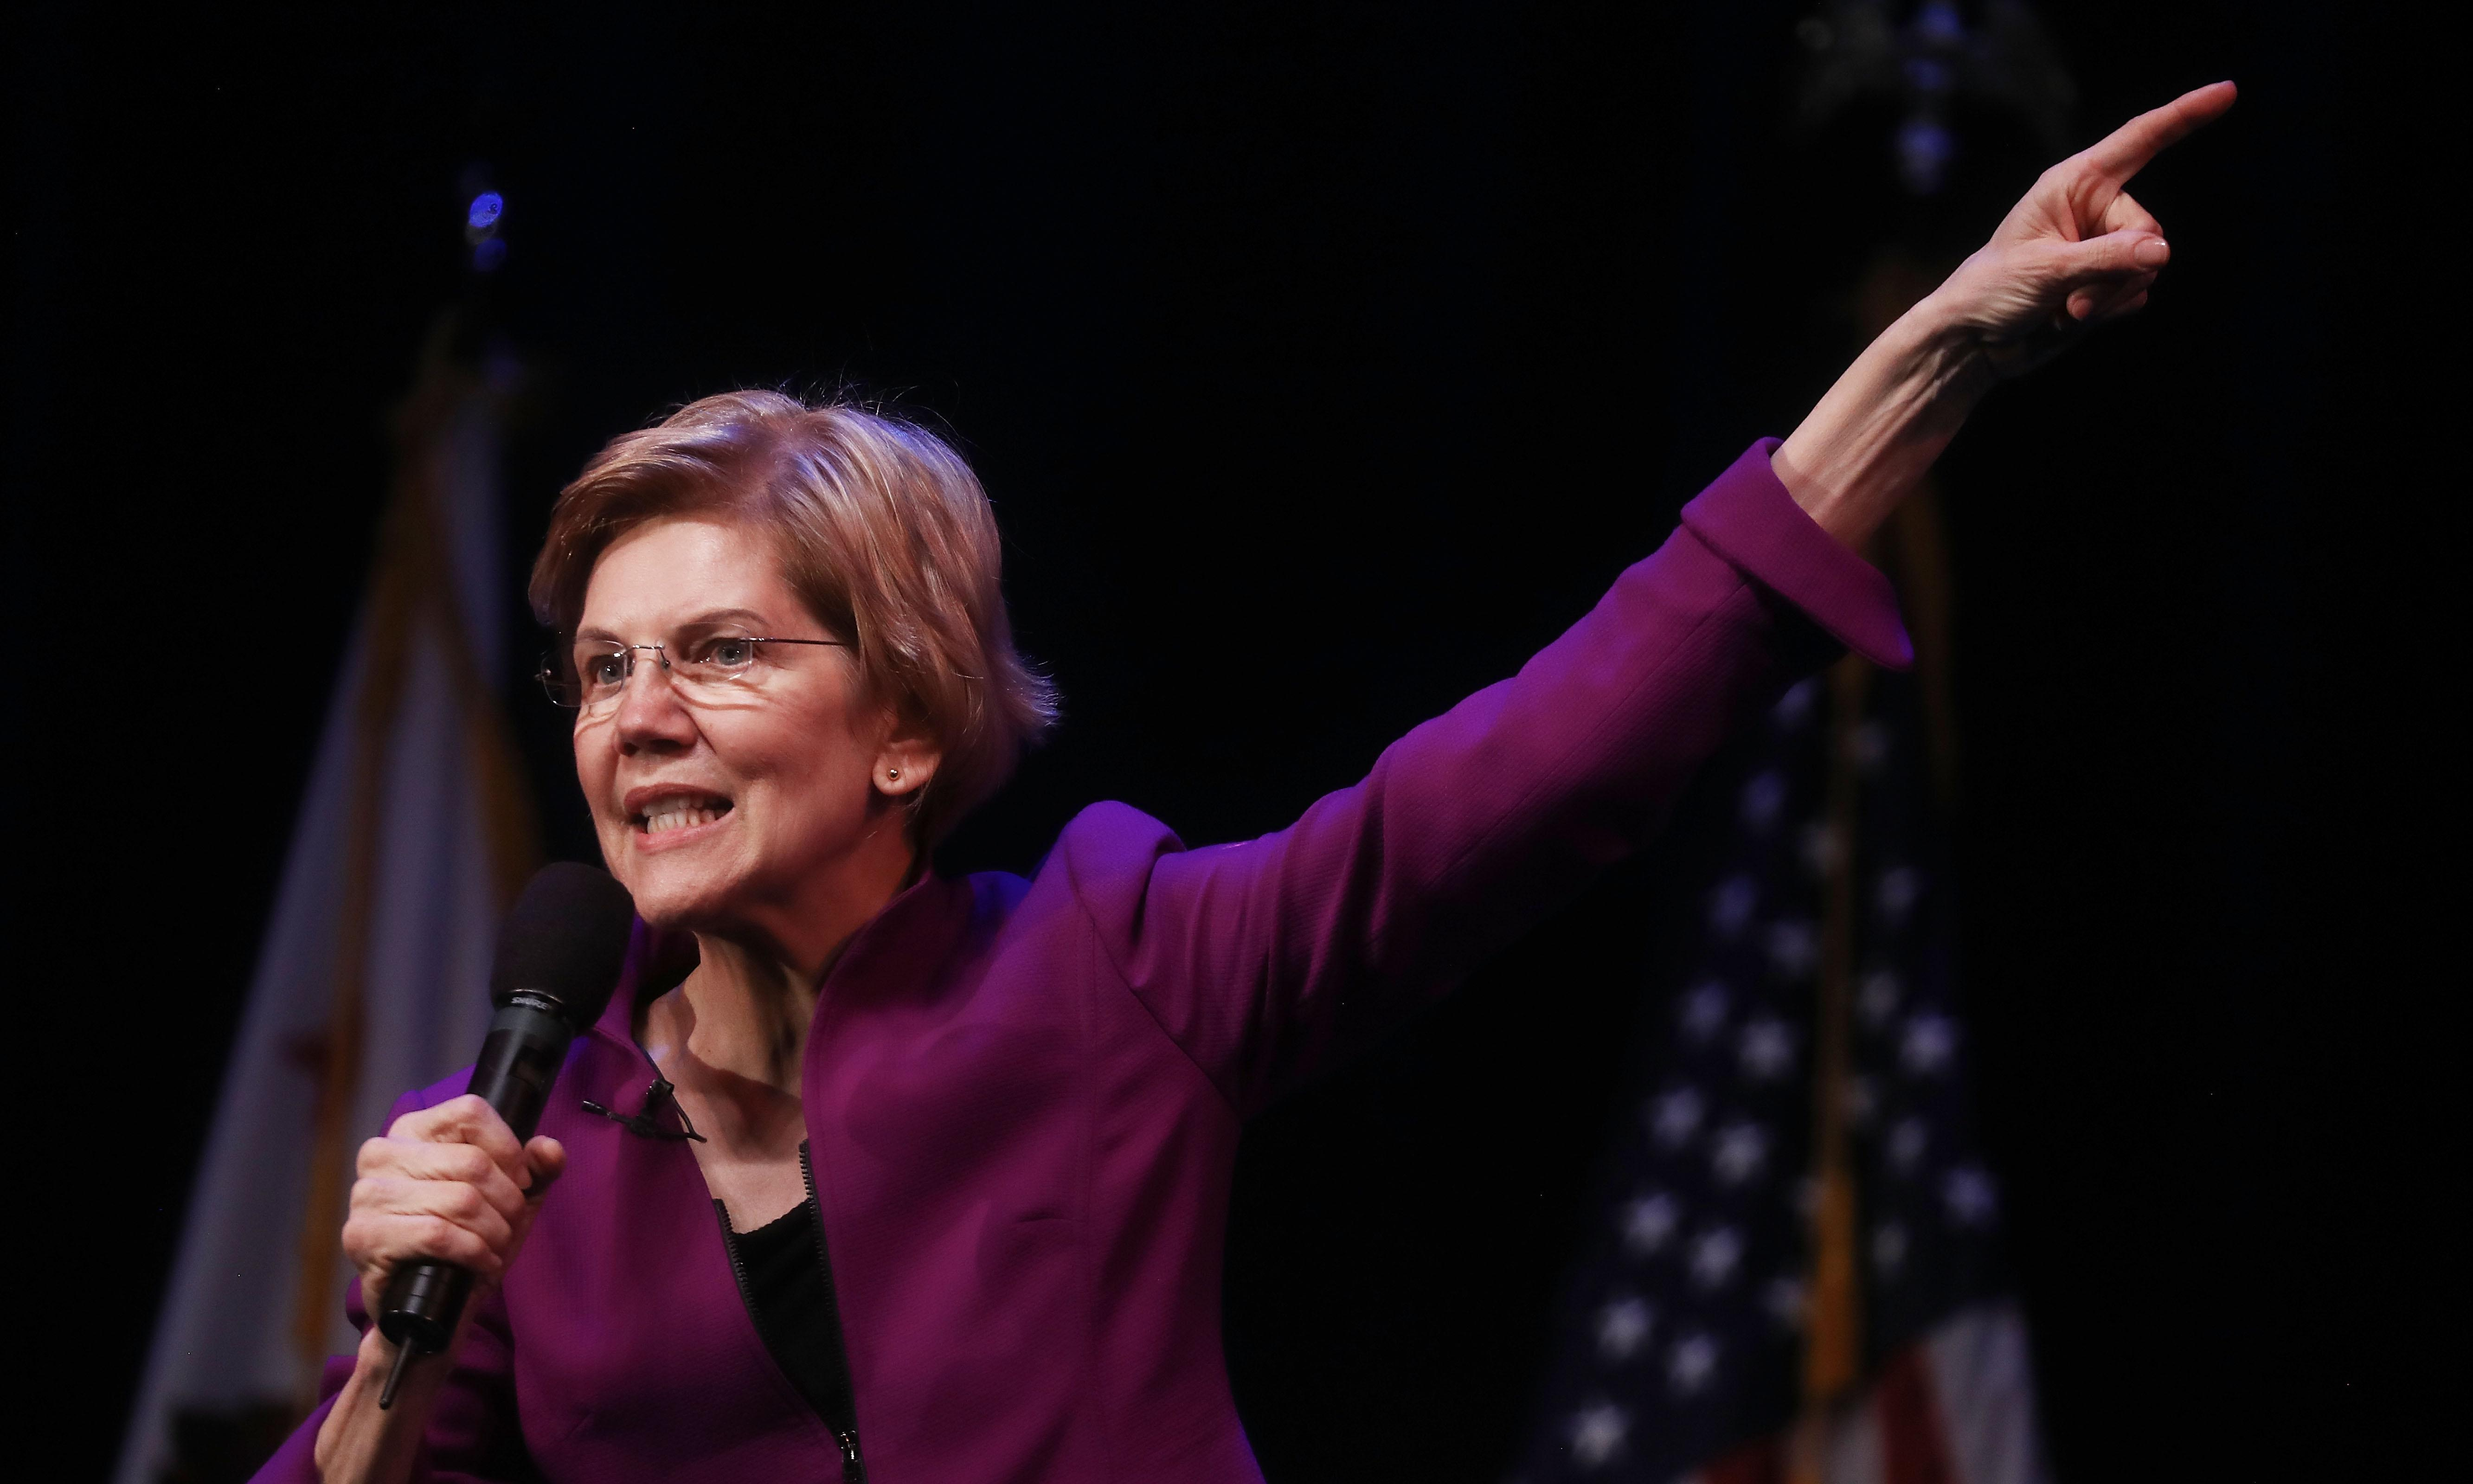 Why vote for Sanders when you can have Elizabeth Warren instead?